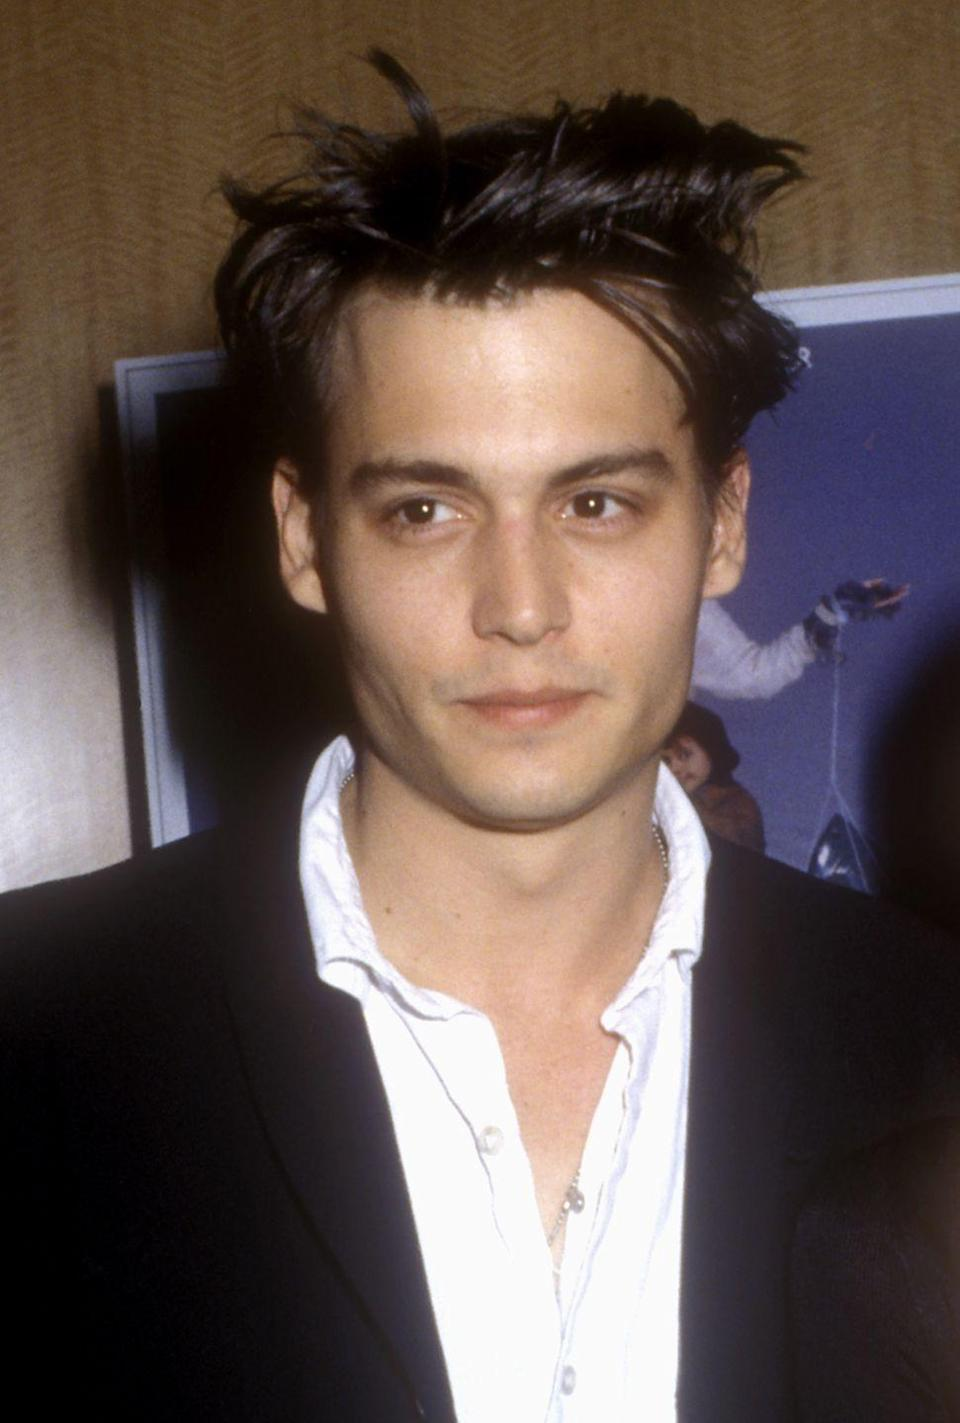 <p>With <em>Edward Scissorhands</em>, <em>What's Eating Gilbert Grape</em>, and <em>Fear and Loathing in Las Vegas </em>all coming out in the 1990s, you can bet that Johnny was a box-office darling who stole the hearts of moviegoers. (And don't even get me started on that gorgeous face.) </p>